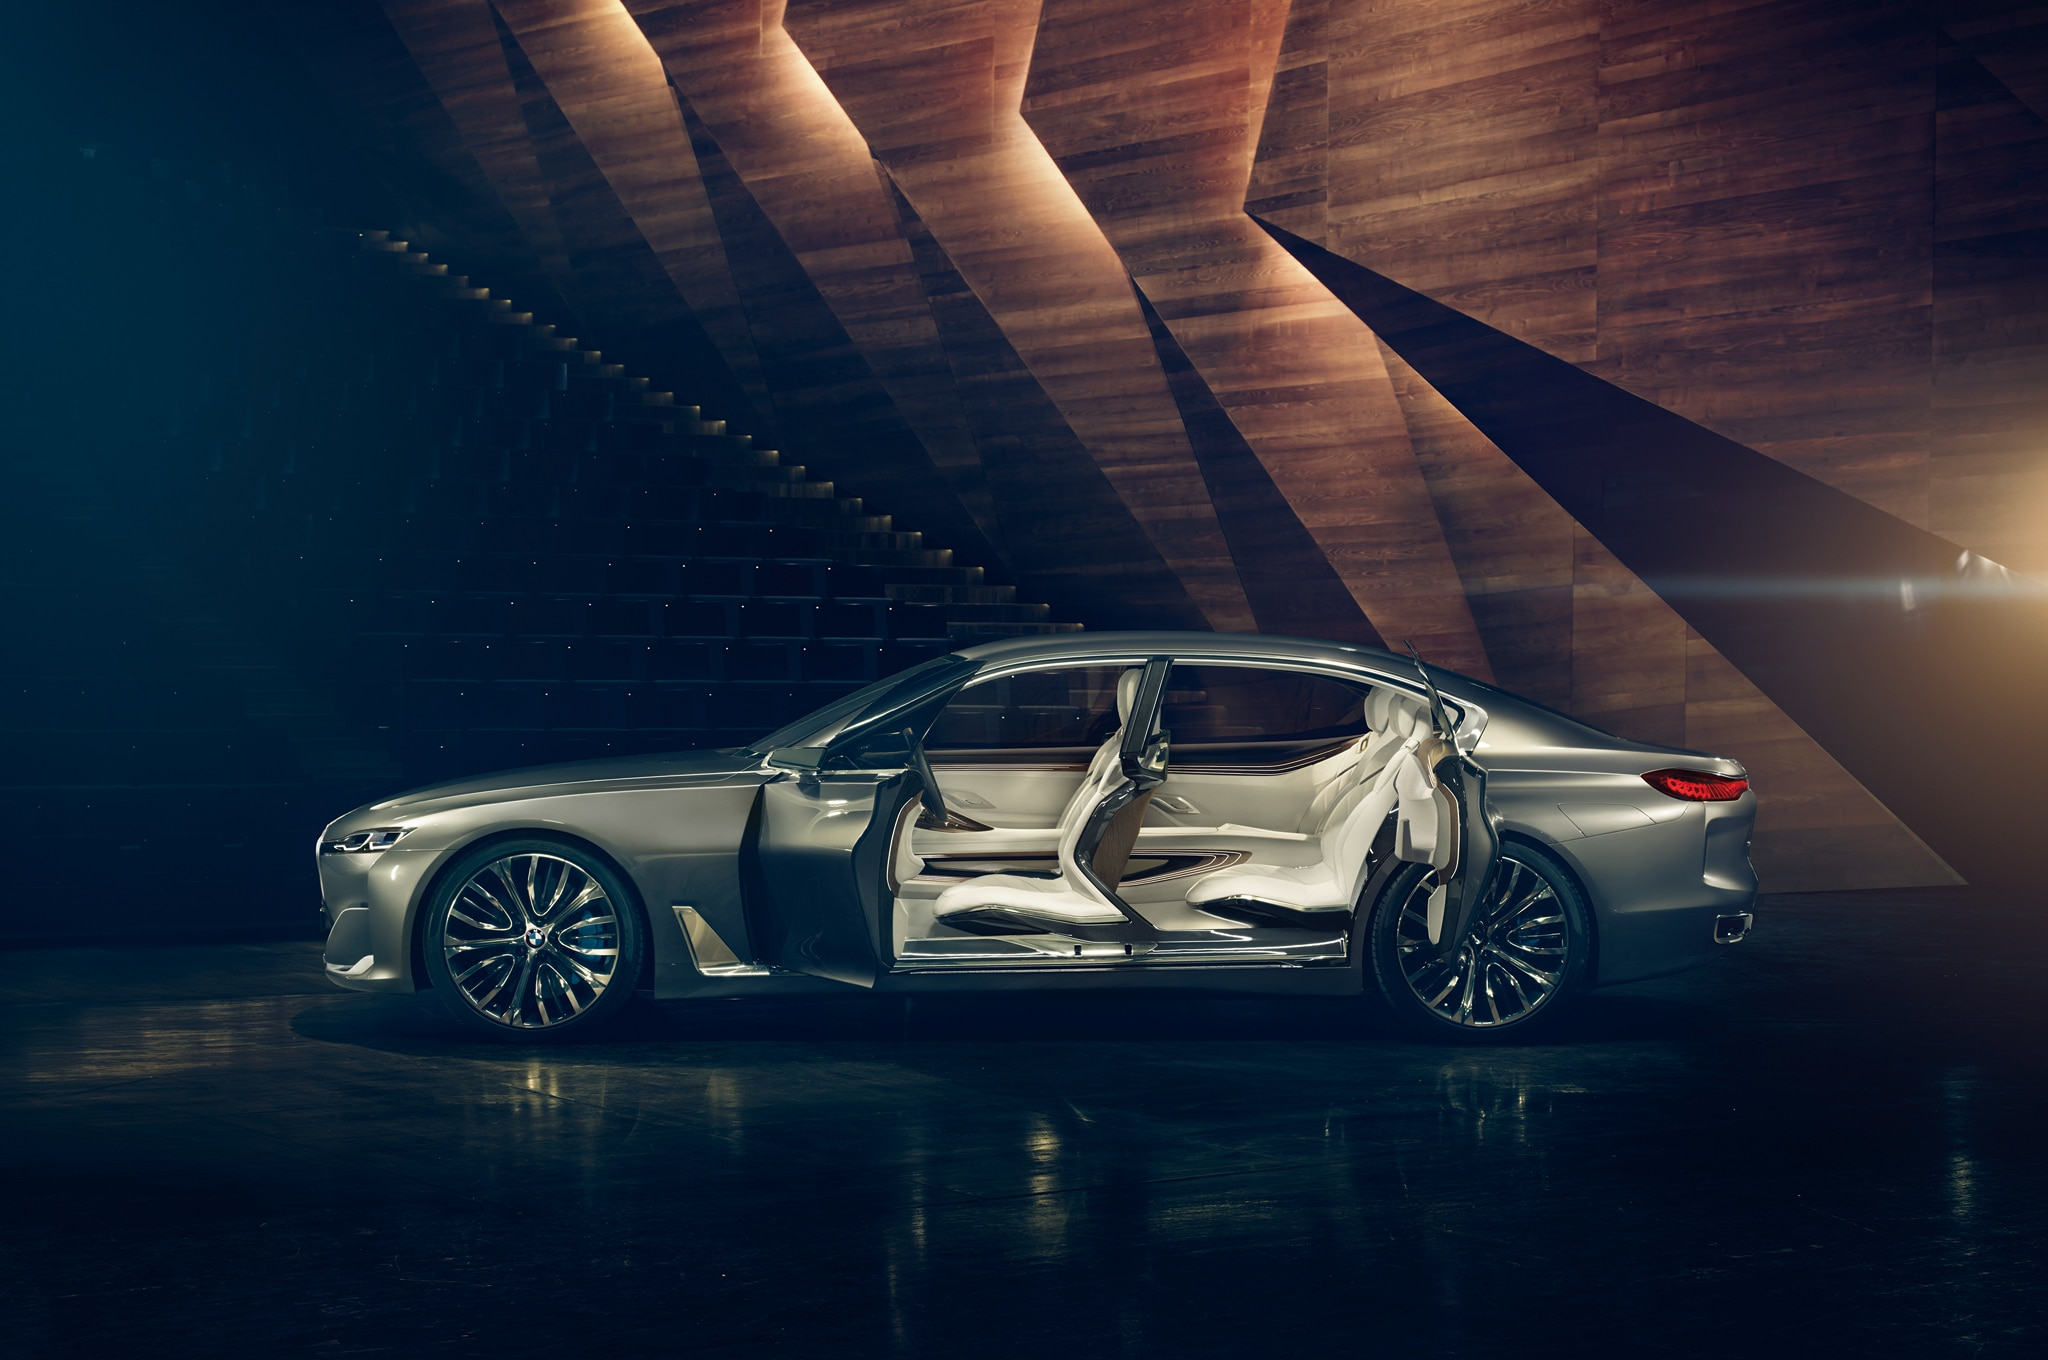 BMW Vision Future Luxury Concept Side Interior View